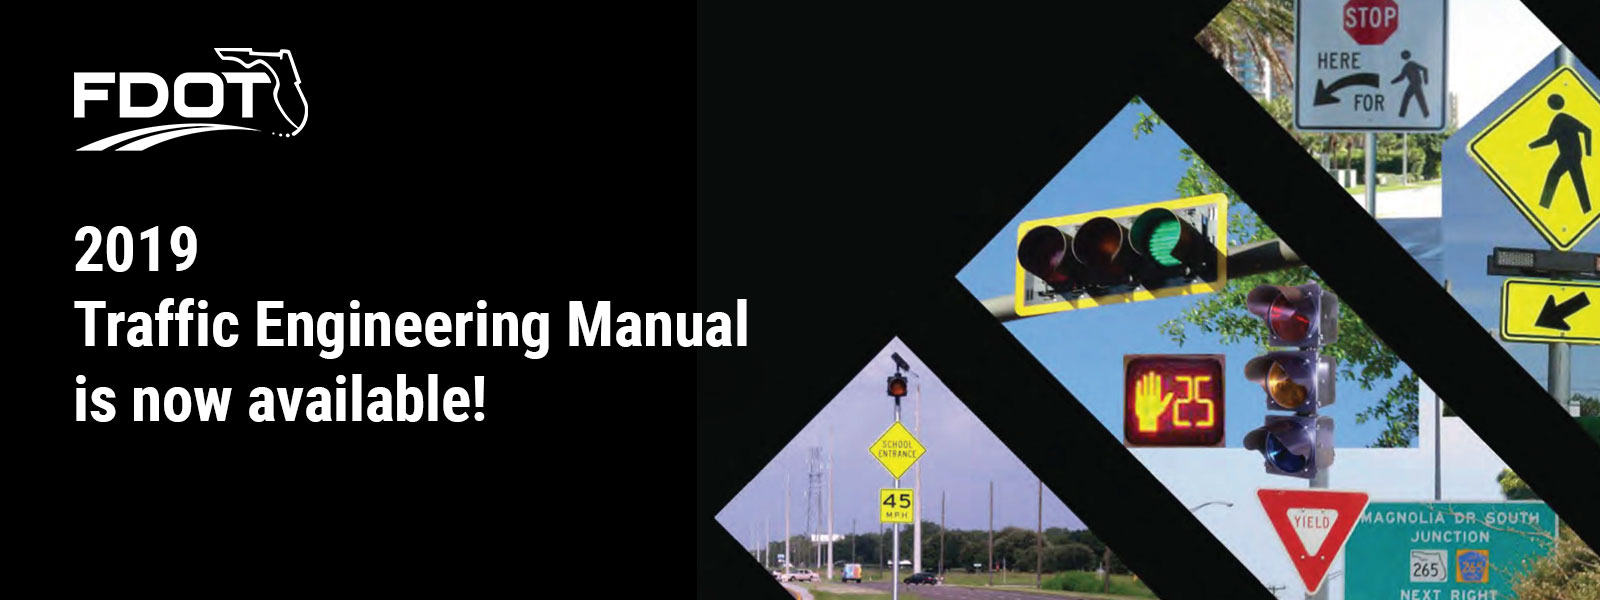 2019 Traffic Engineering Manual – Now Available!